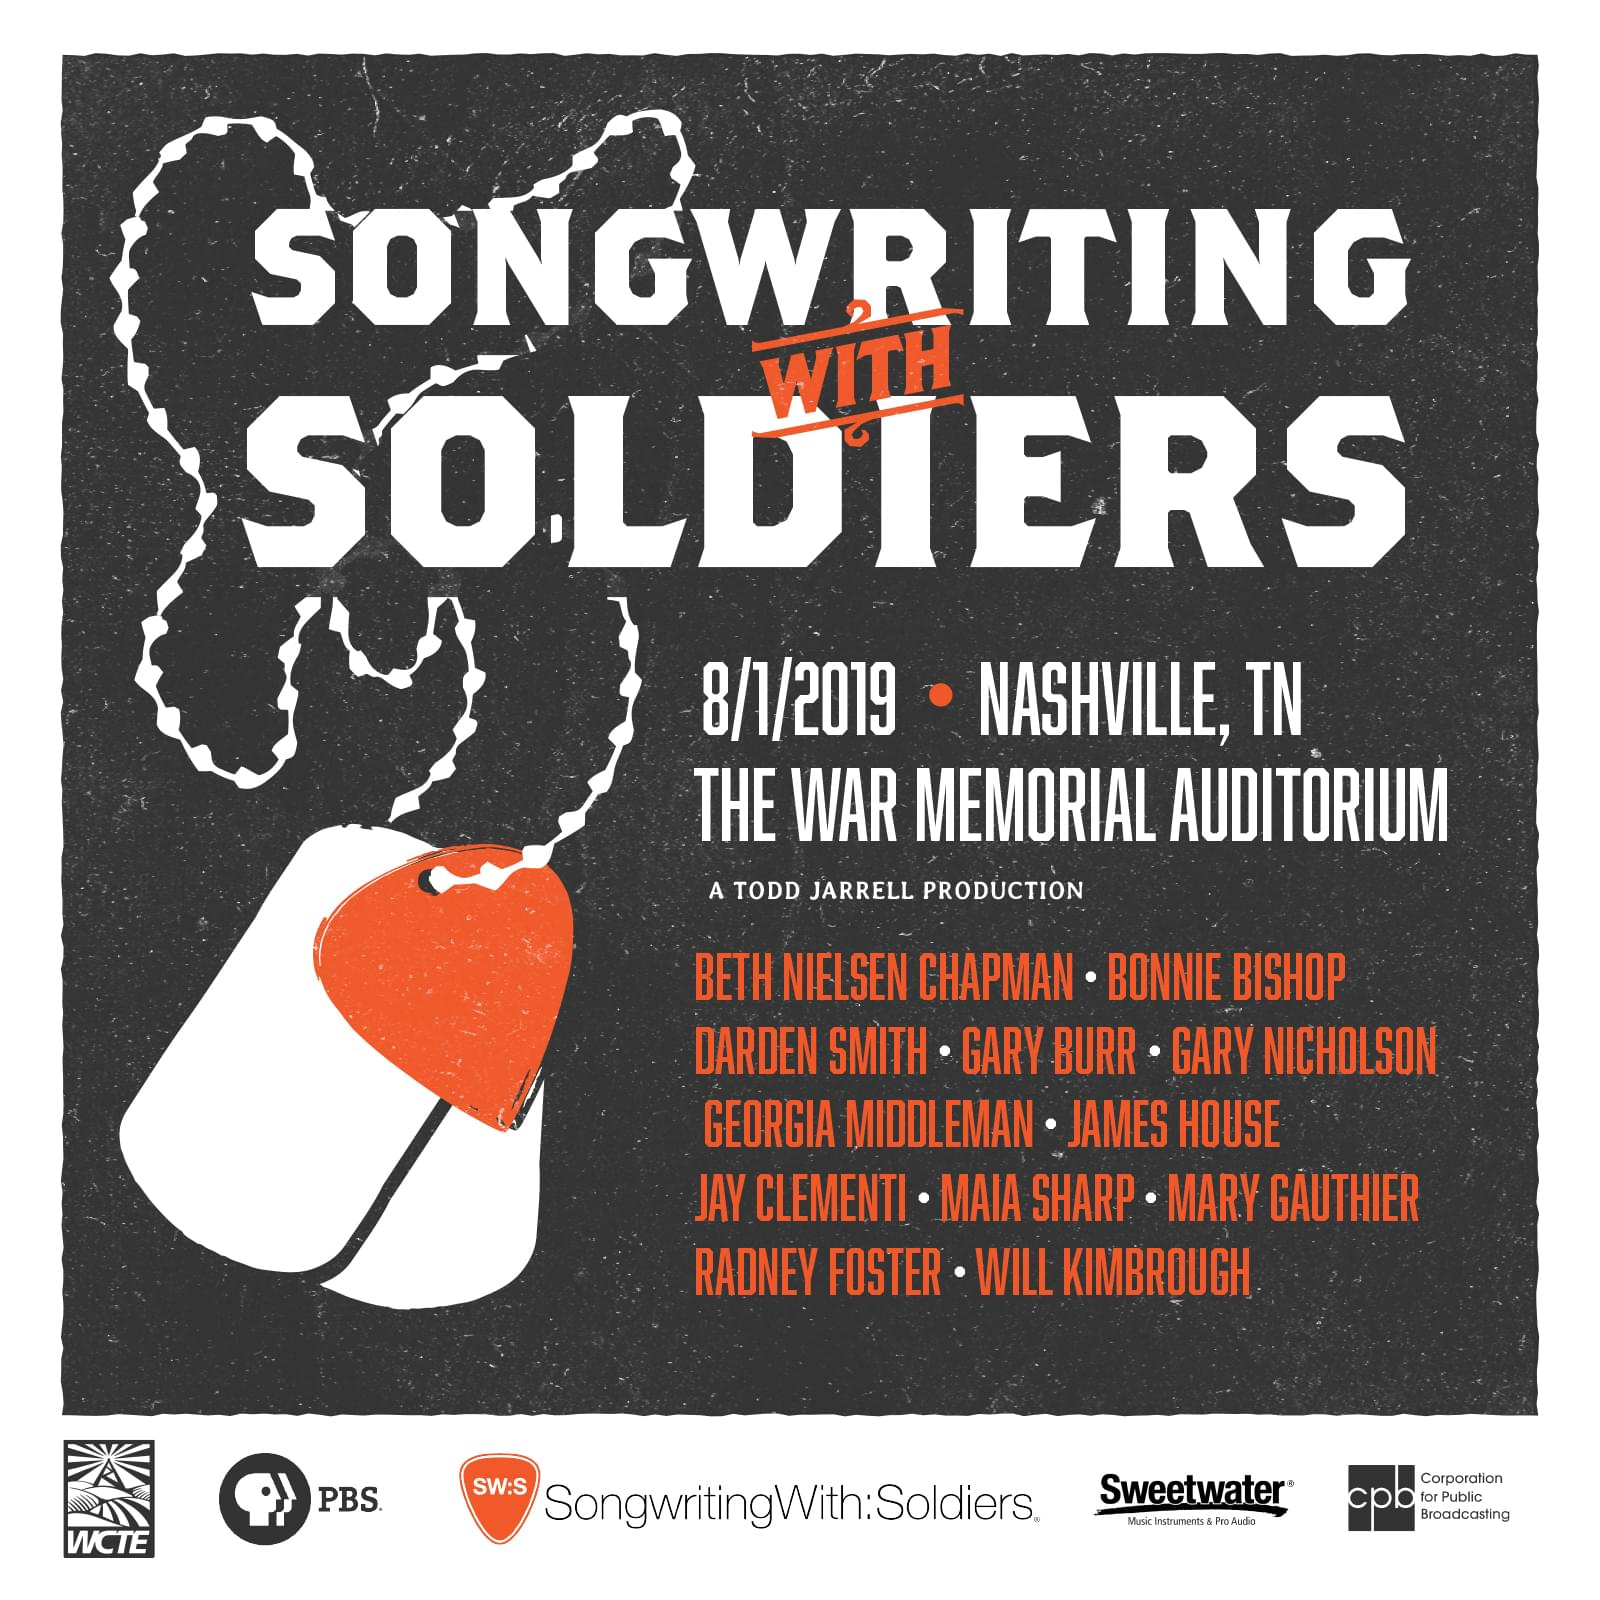 Songwriting With Soldiers